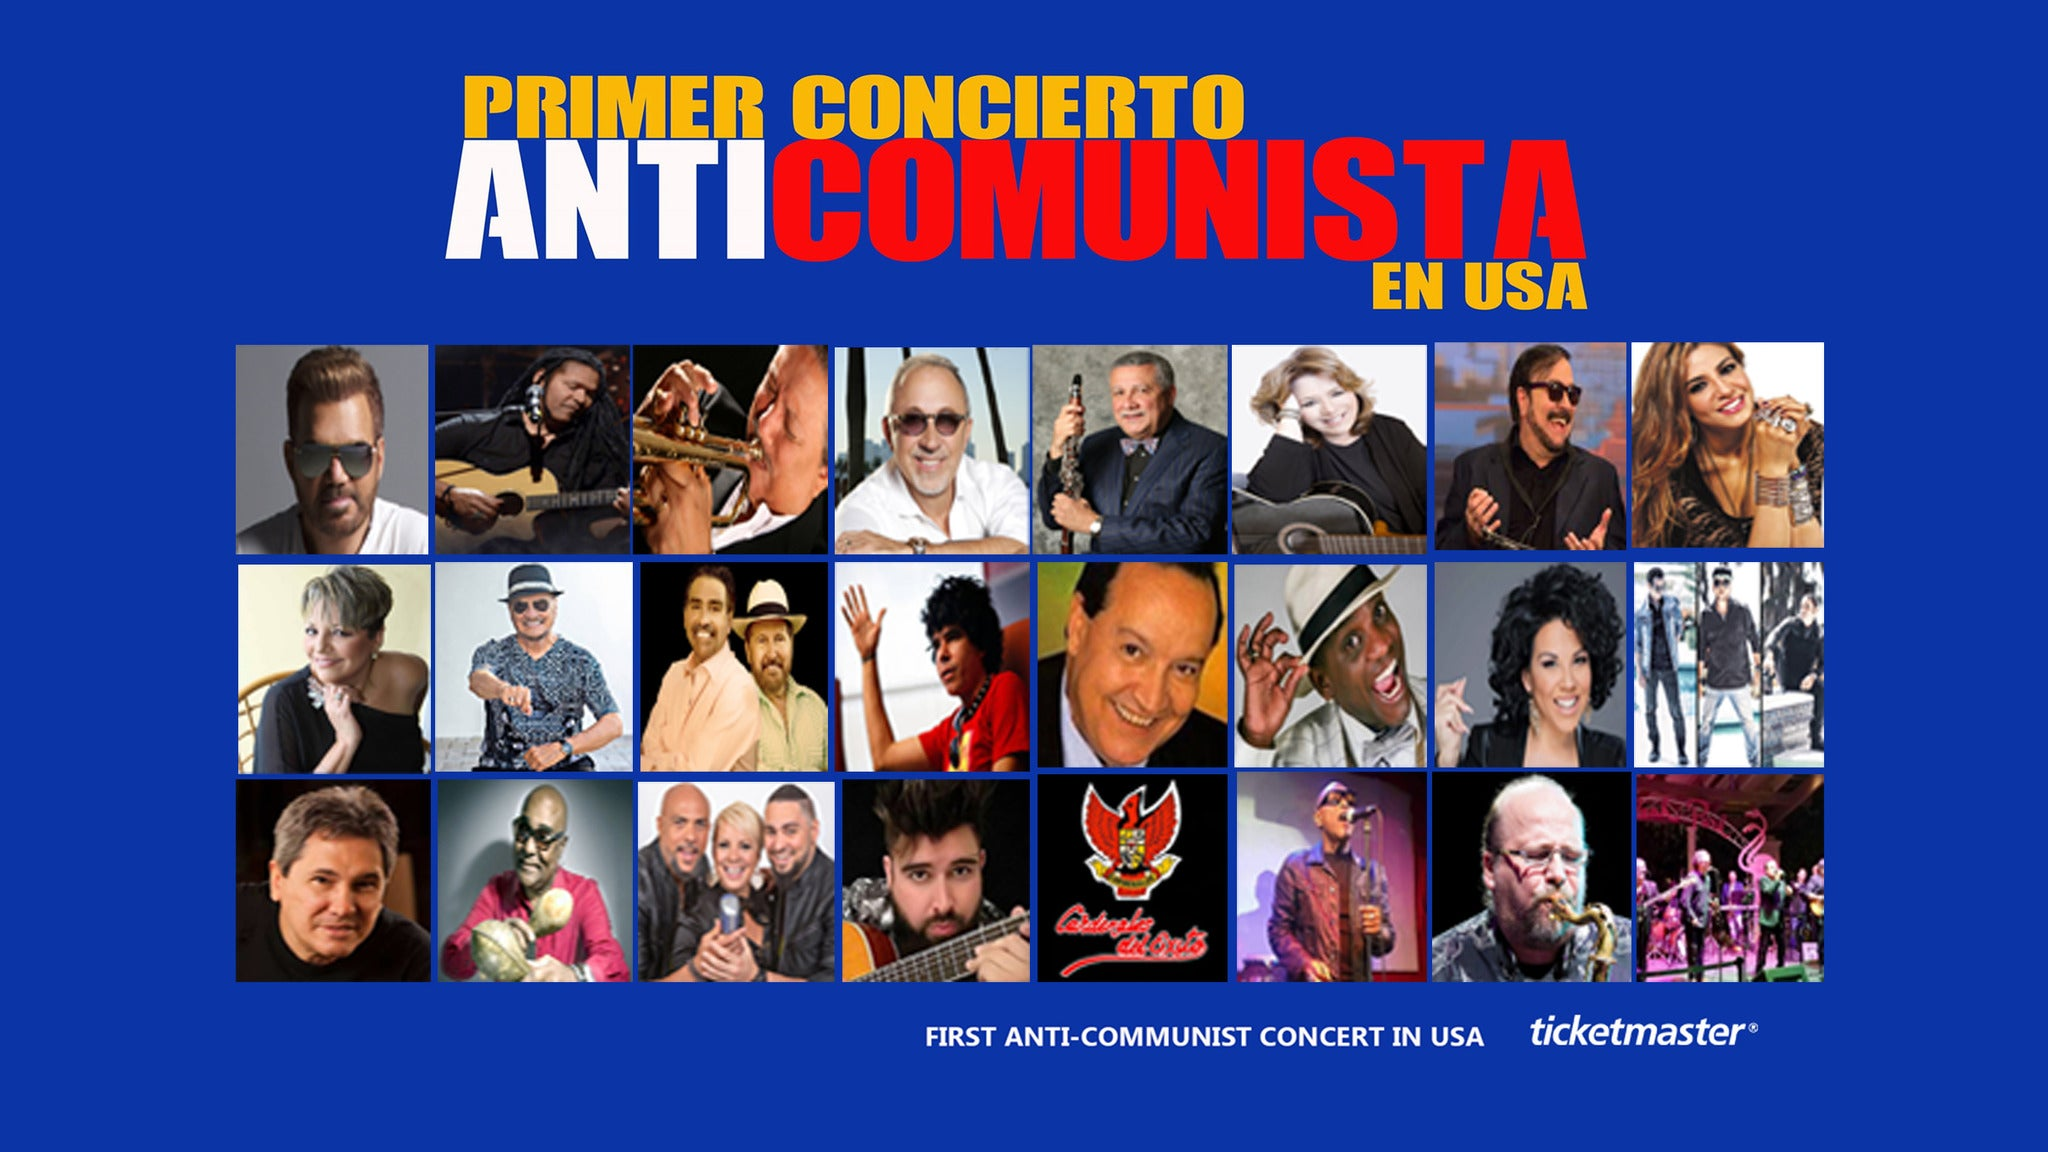 First Anti-Communist Concert in the US- Primer Concierto Anticomunista